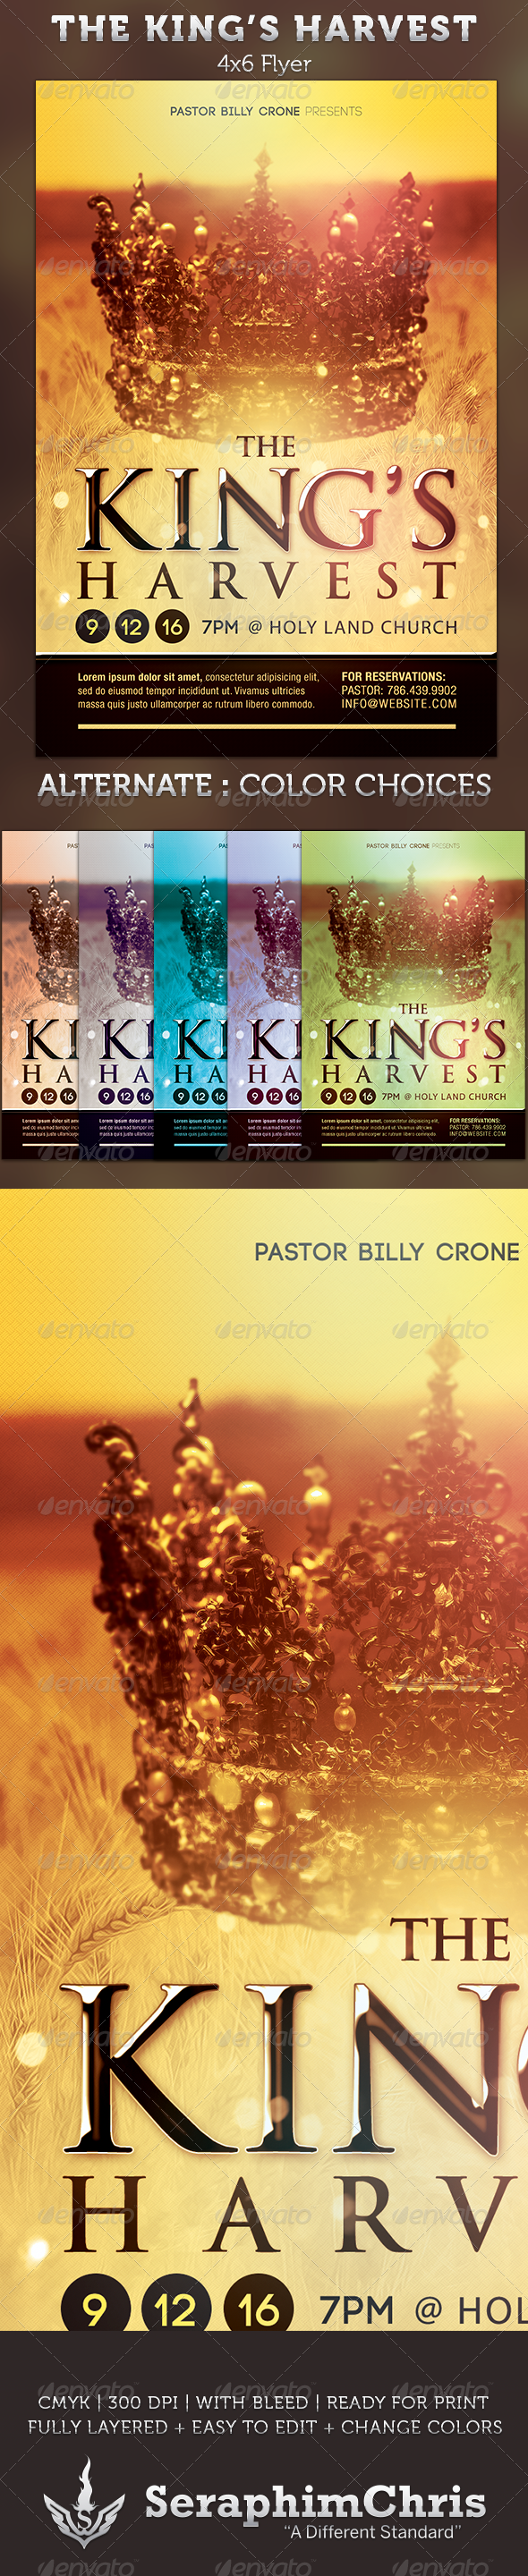 The KingS Harvest Church Flyer Template  Harvest Church Flyer